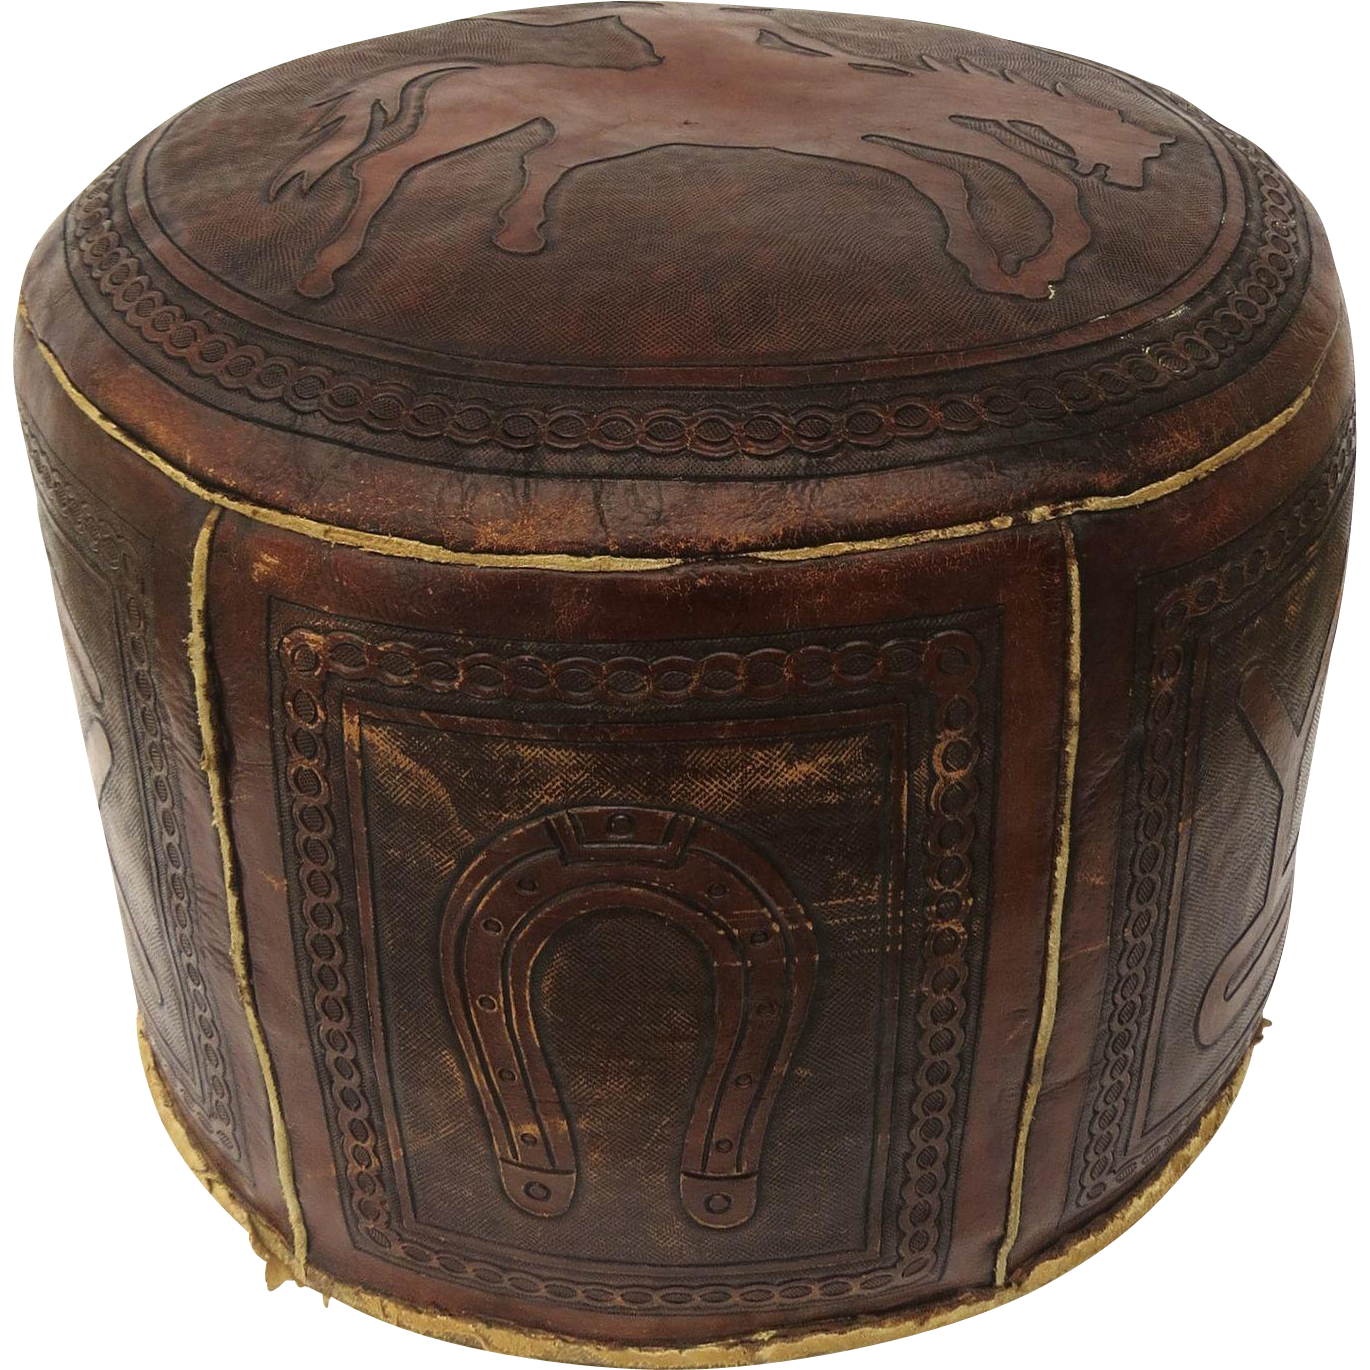 Round Leather Ottoman Design : Vintage Tooled Round Ottoman Cowboy Bronco Horse Brand Design from ...